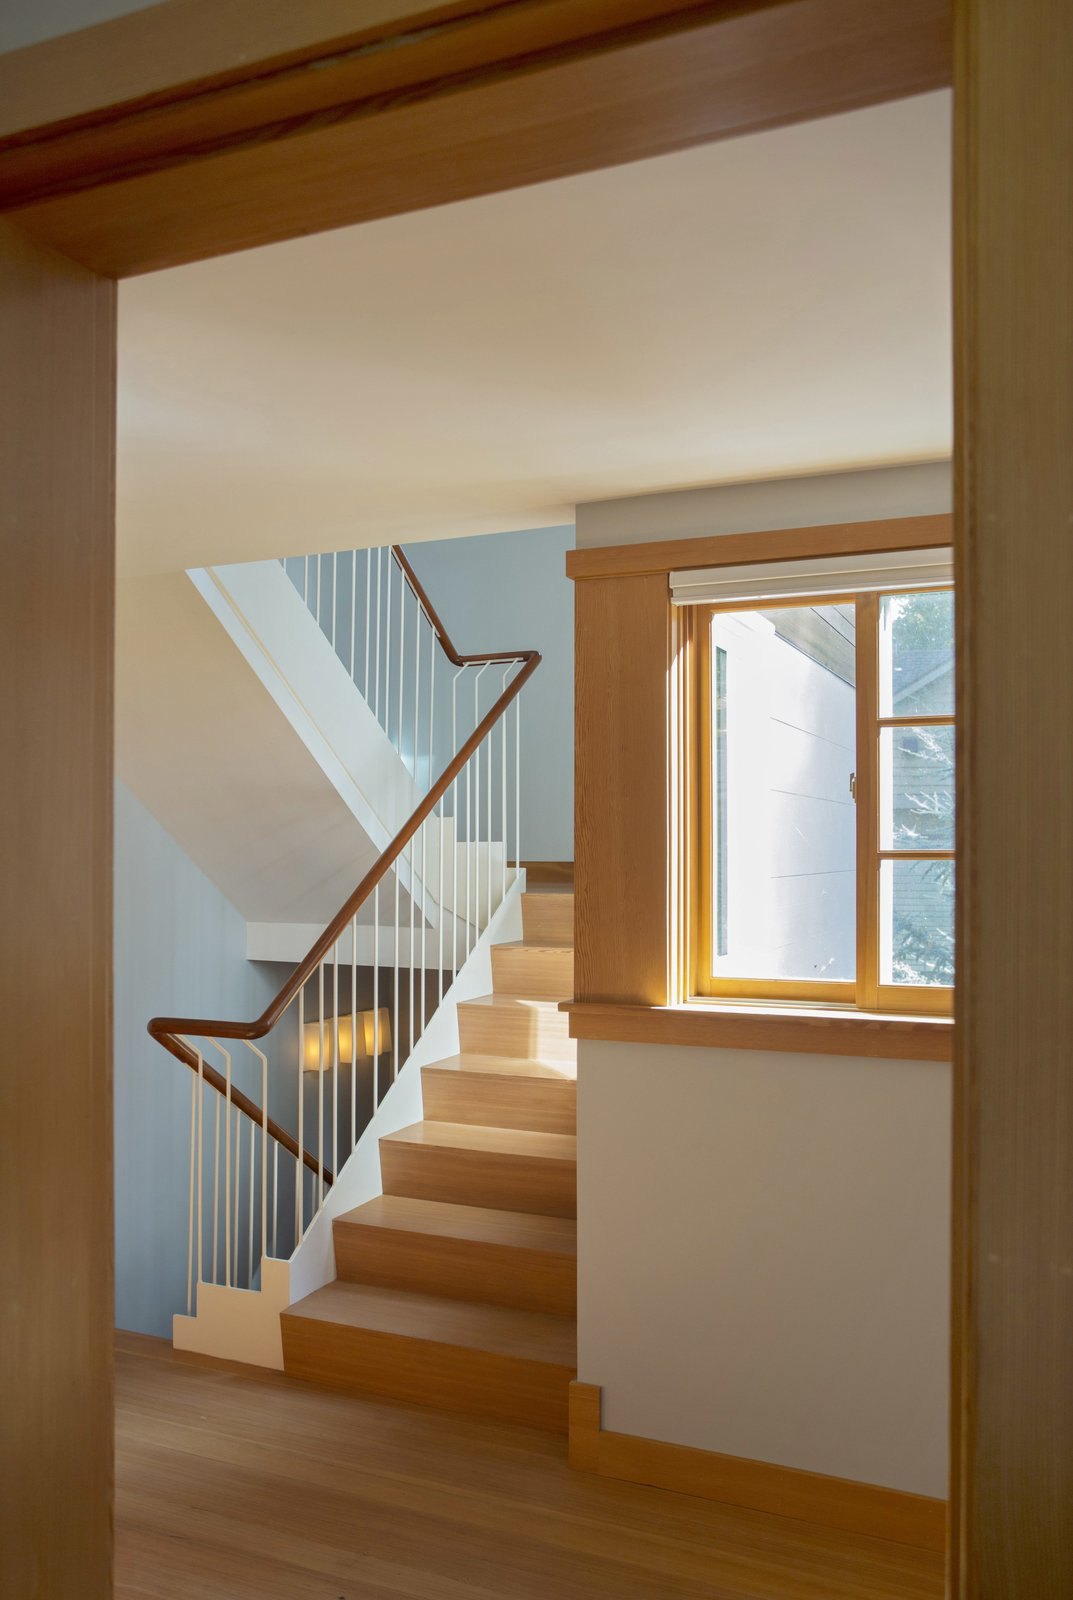 The stair at the second floor, leading up to the husband's office at the third floor.  Sustainable Urban Villa by Wolf Architects, Inc.